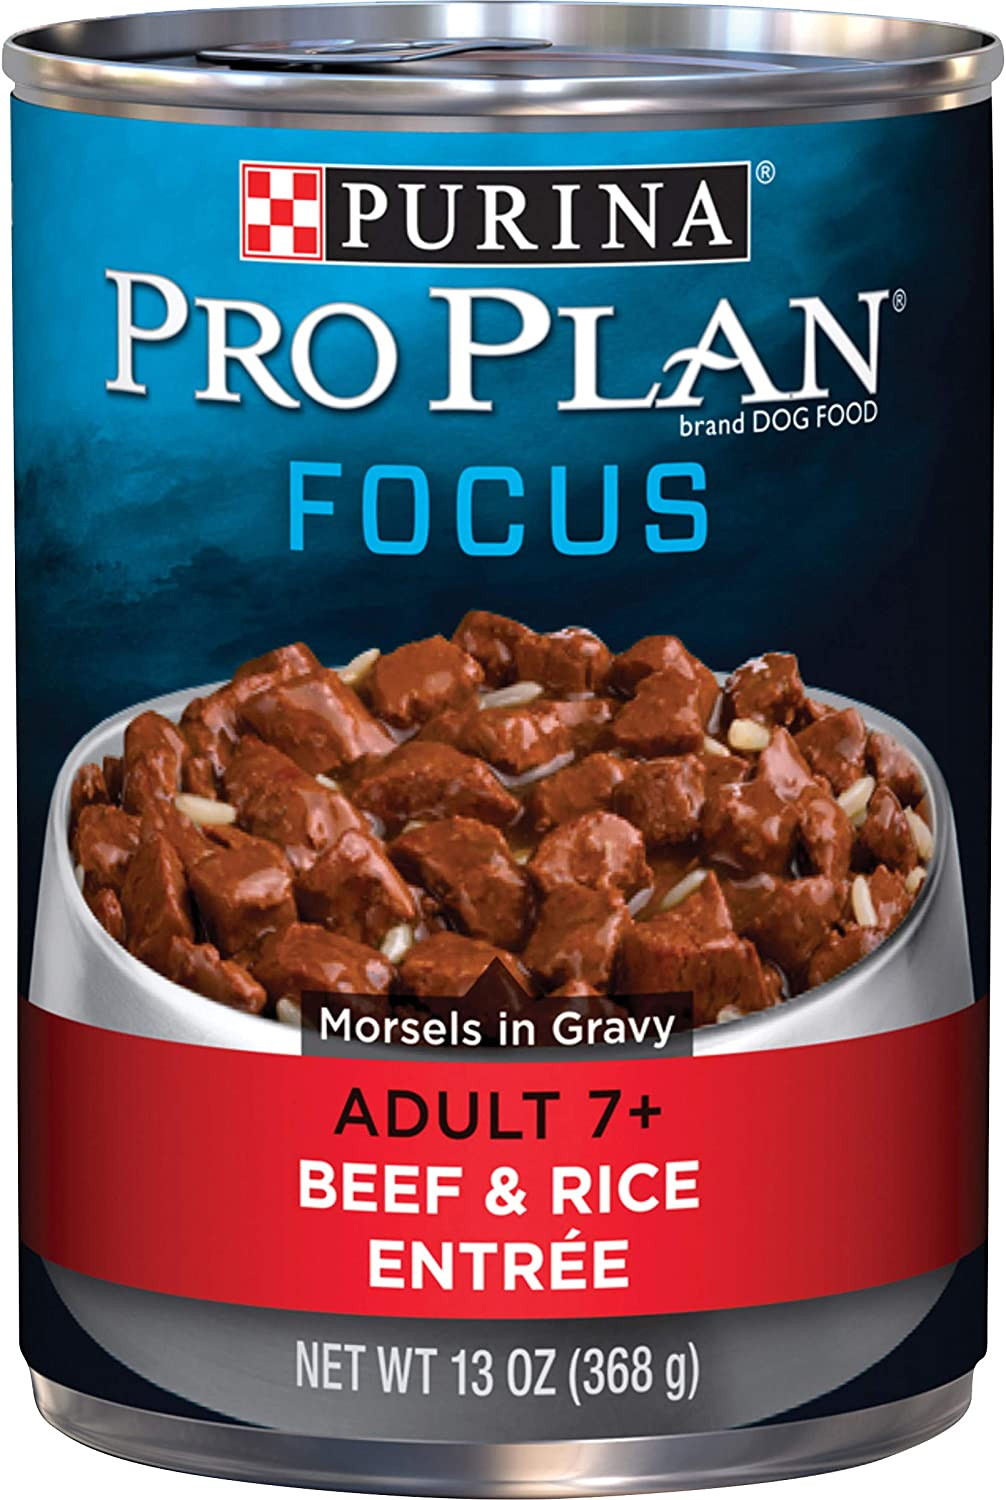 Purina Pro Plan Focus Adult 7+ Beef & Rice Entrée Morsels in Gravy